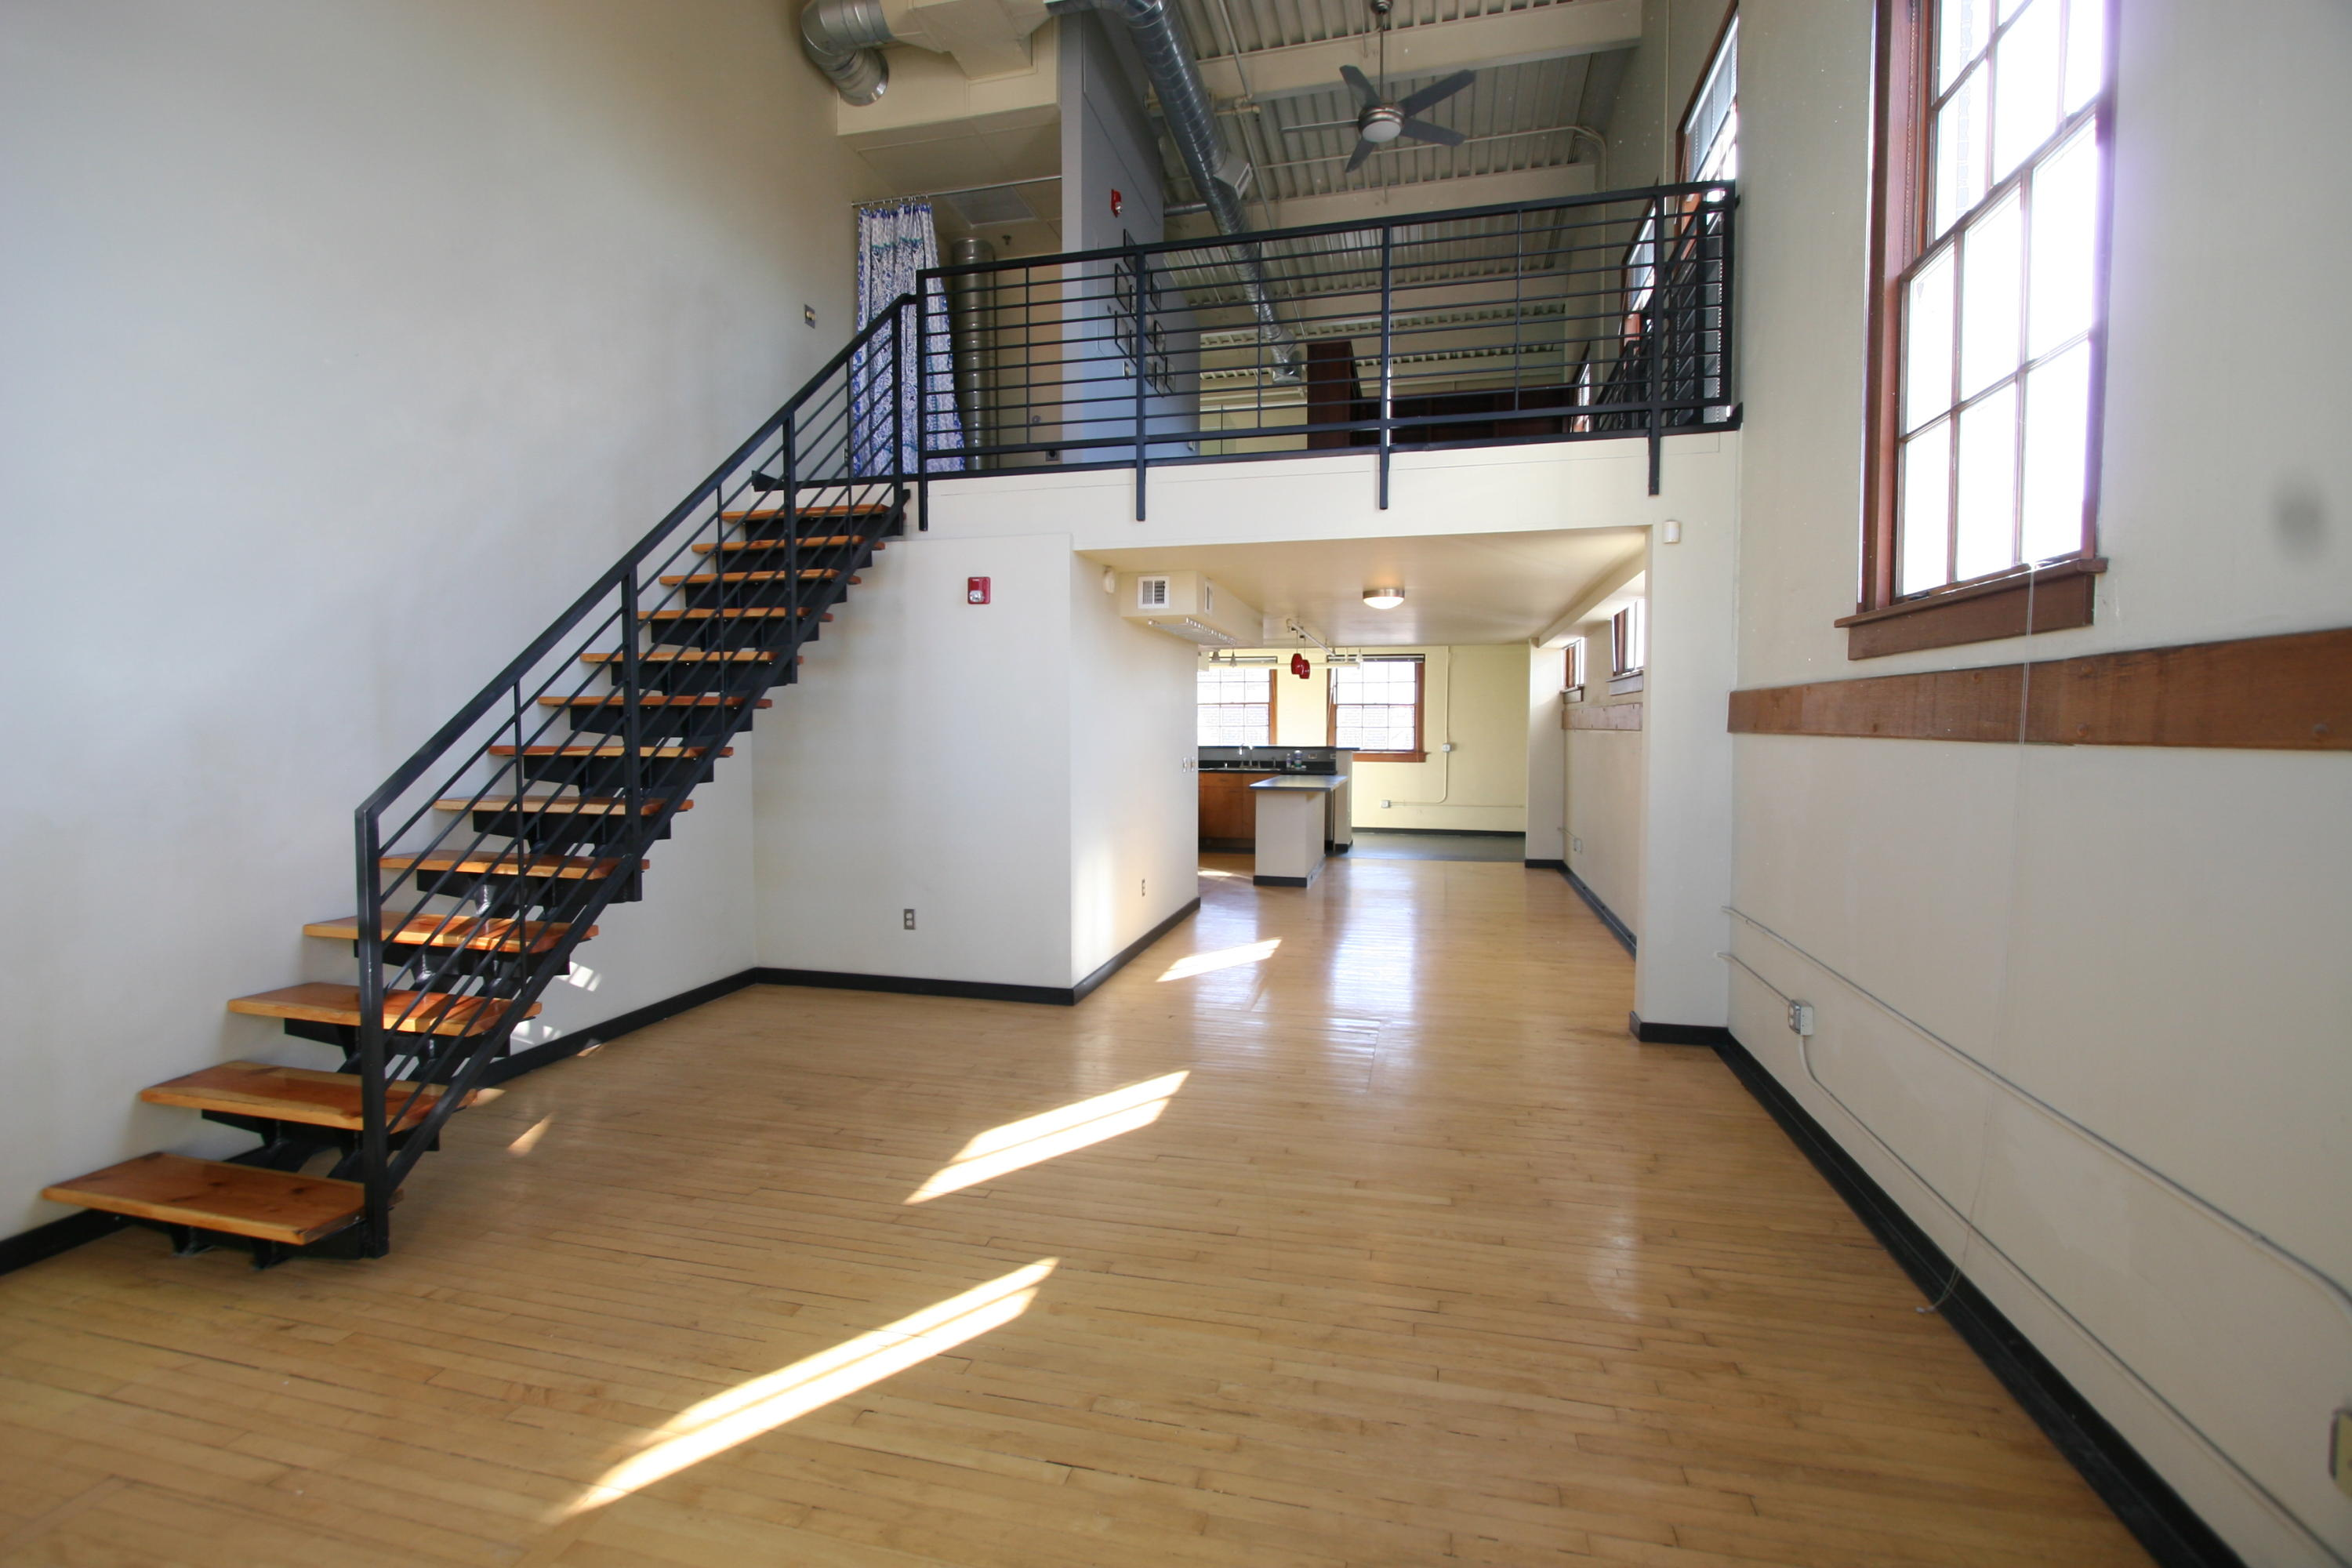 Located in the 1938-built historic Gymnasium building at The Lofts at Albuquerque High in East Downtown (EDo), this loft is the largest in the building. Located at the northwest corner, it features an island kitchen, original wood floors, elevated ceiling, west- and north-facing windows with mountain and downtown views, spacious full bath and 3/4 bath. Access to beautifully landscaped secure courtyard with grill, fountains, seating. Secure building. Common lobby area. Secure parking available at City-owned garage across the street at 100 Arno Association dues cover water/sewage/trash/recycling, insurance, common area maintenance, reserve contribution. Airbnb not allowed.